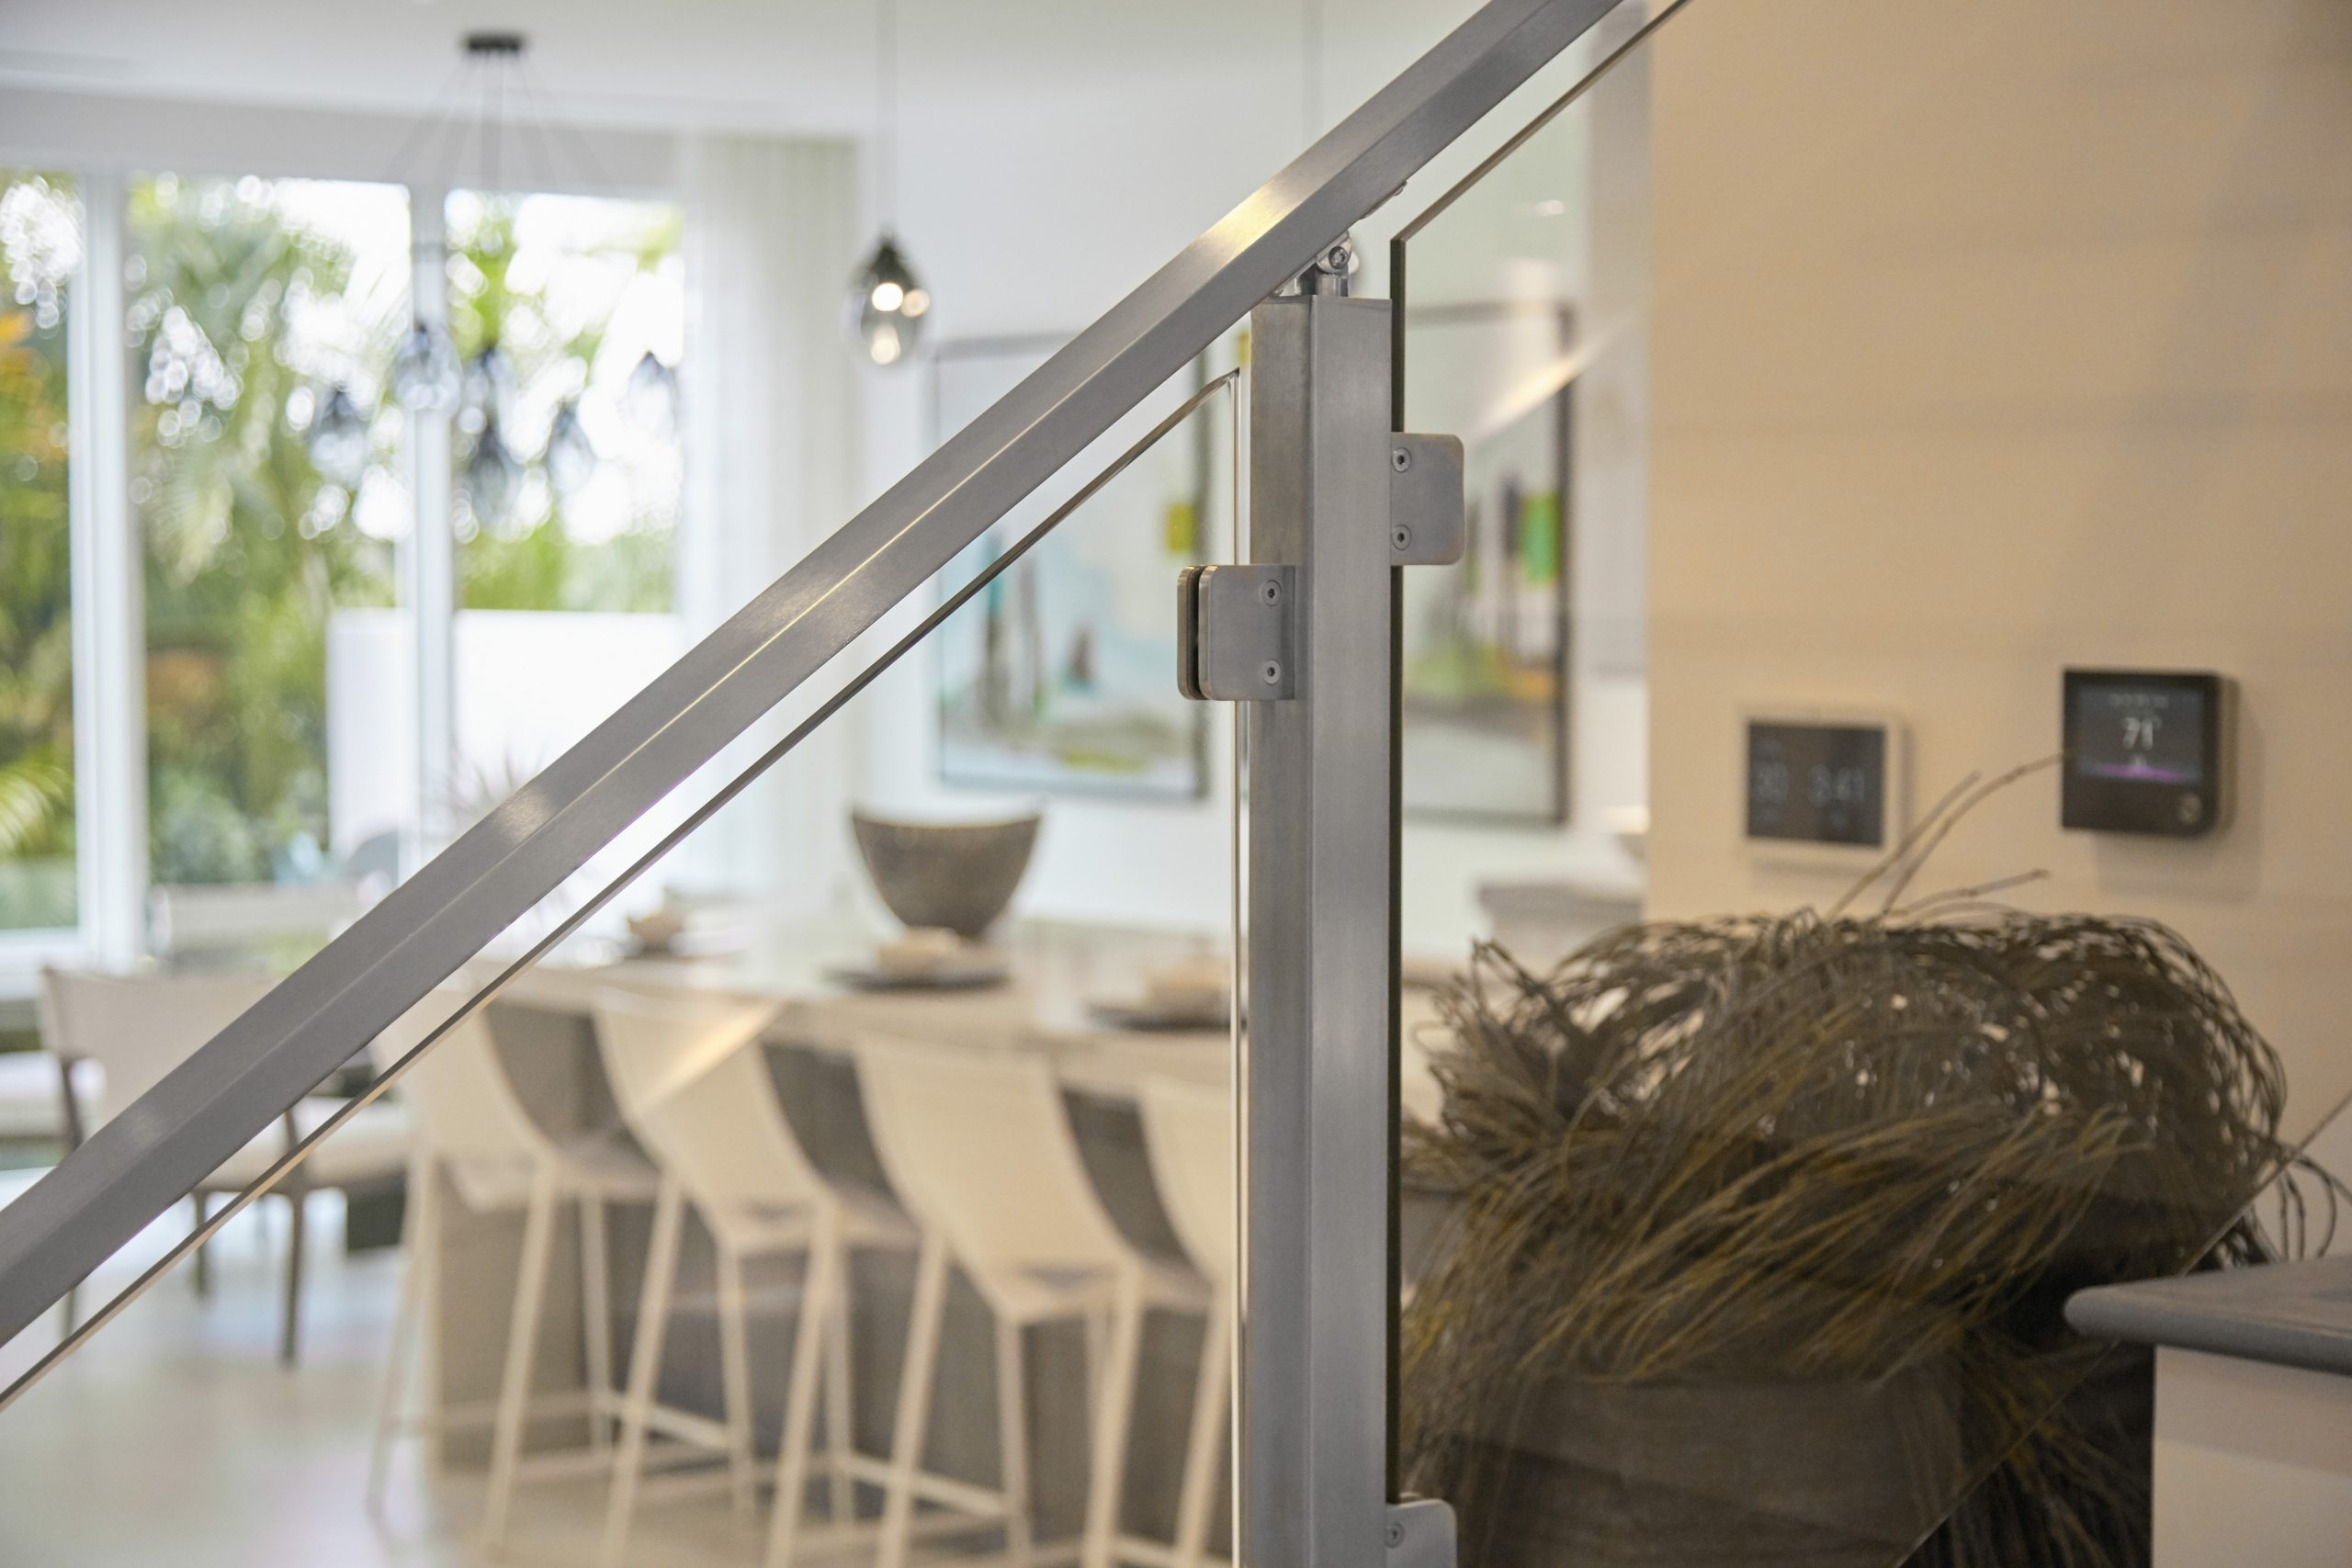 Glass Railing Glass Panel Railing For Stairs Decks Balconies | Staircase Handrail Glass Designs | Frosted Glass | Curved | Glass Baluster | Glass Painting | Glass Etching